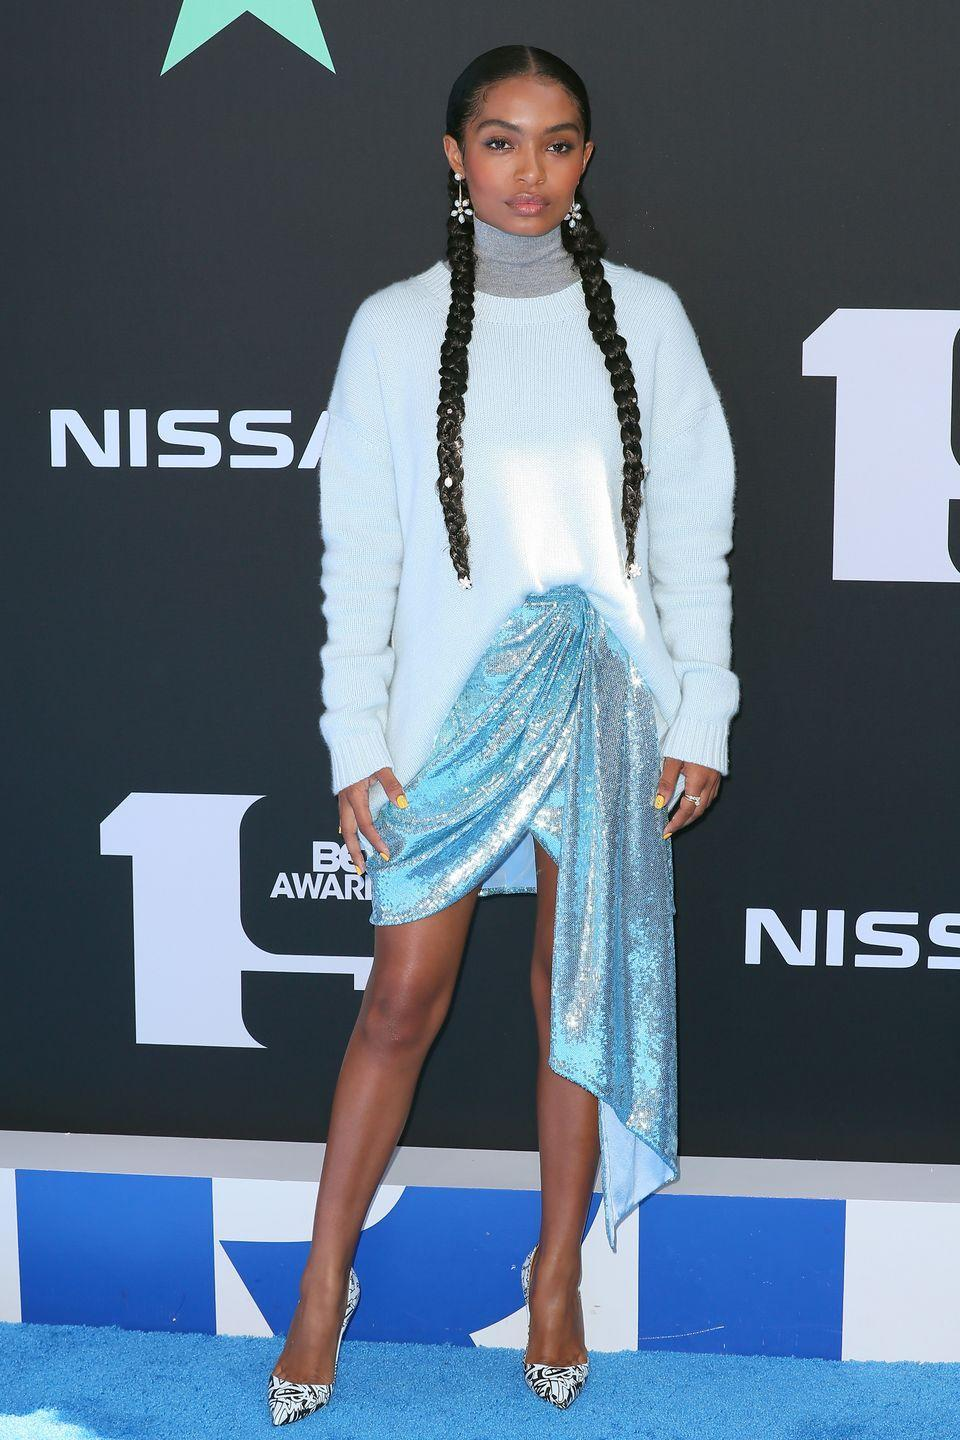 <p>Actress <strong>Yara Shahidi</strong> shows us that this simple sleek style with a braid woven beneath each ear will bring you back to your schoolgirl days (in a sophisticated way!). This is a quick no heat style that keeps your hair protected. </p>